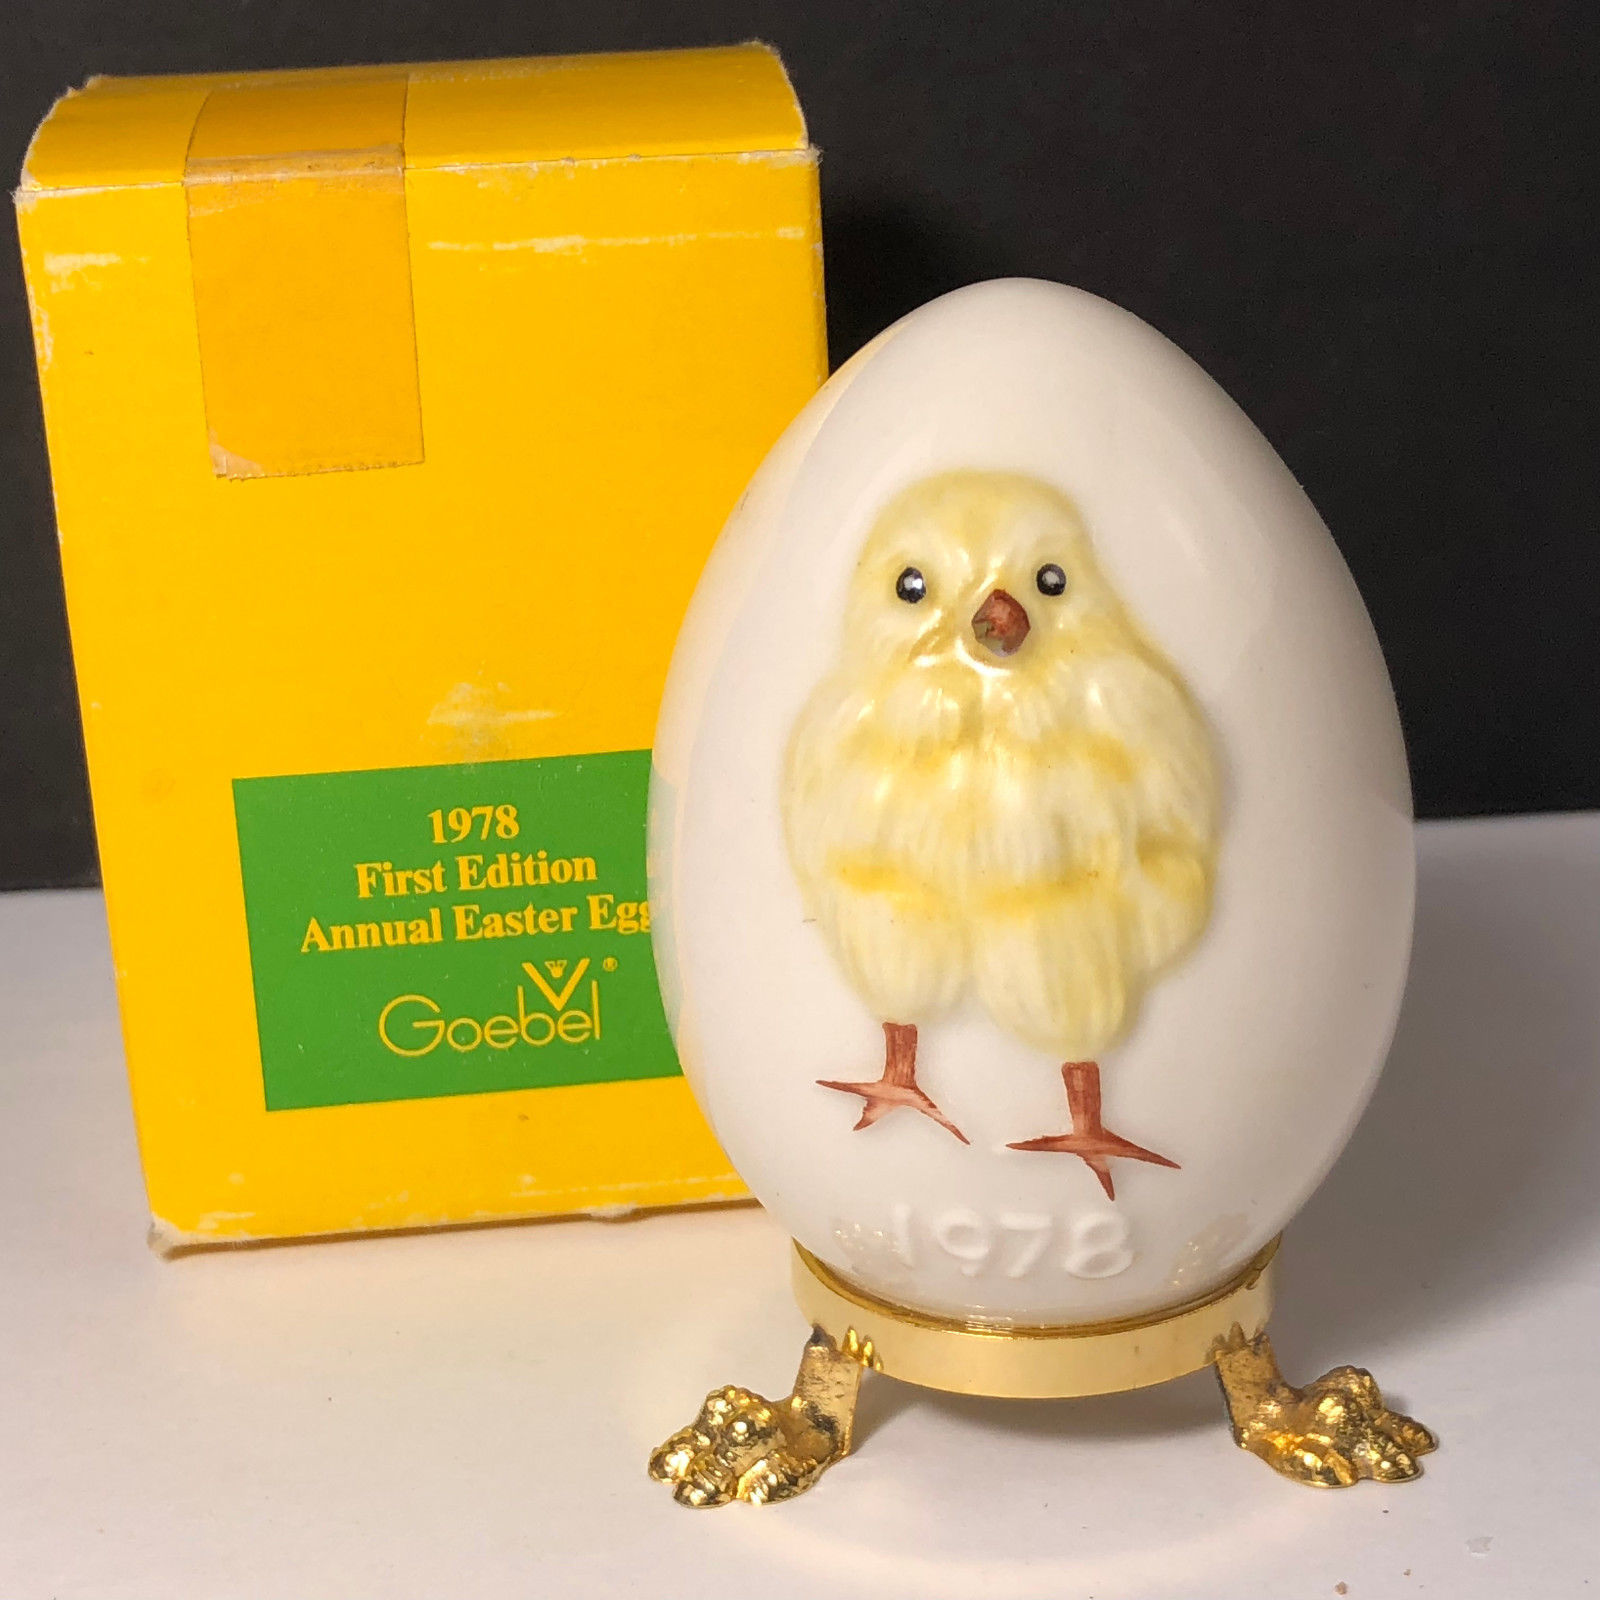 1978 GOEBEL ANNUAL EASTER EGG West Germany first 1st edition chicken figurine 2